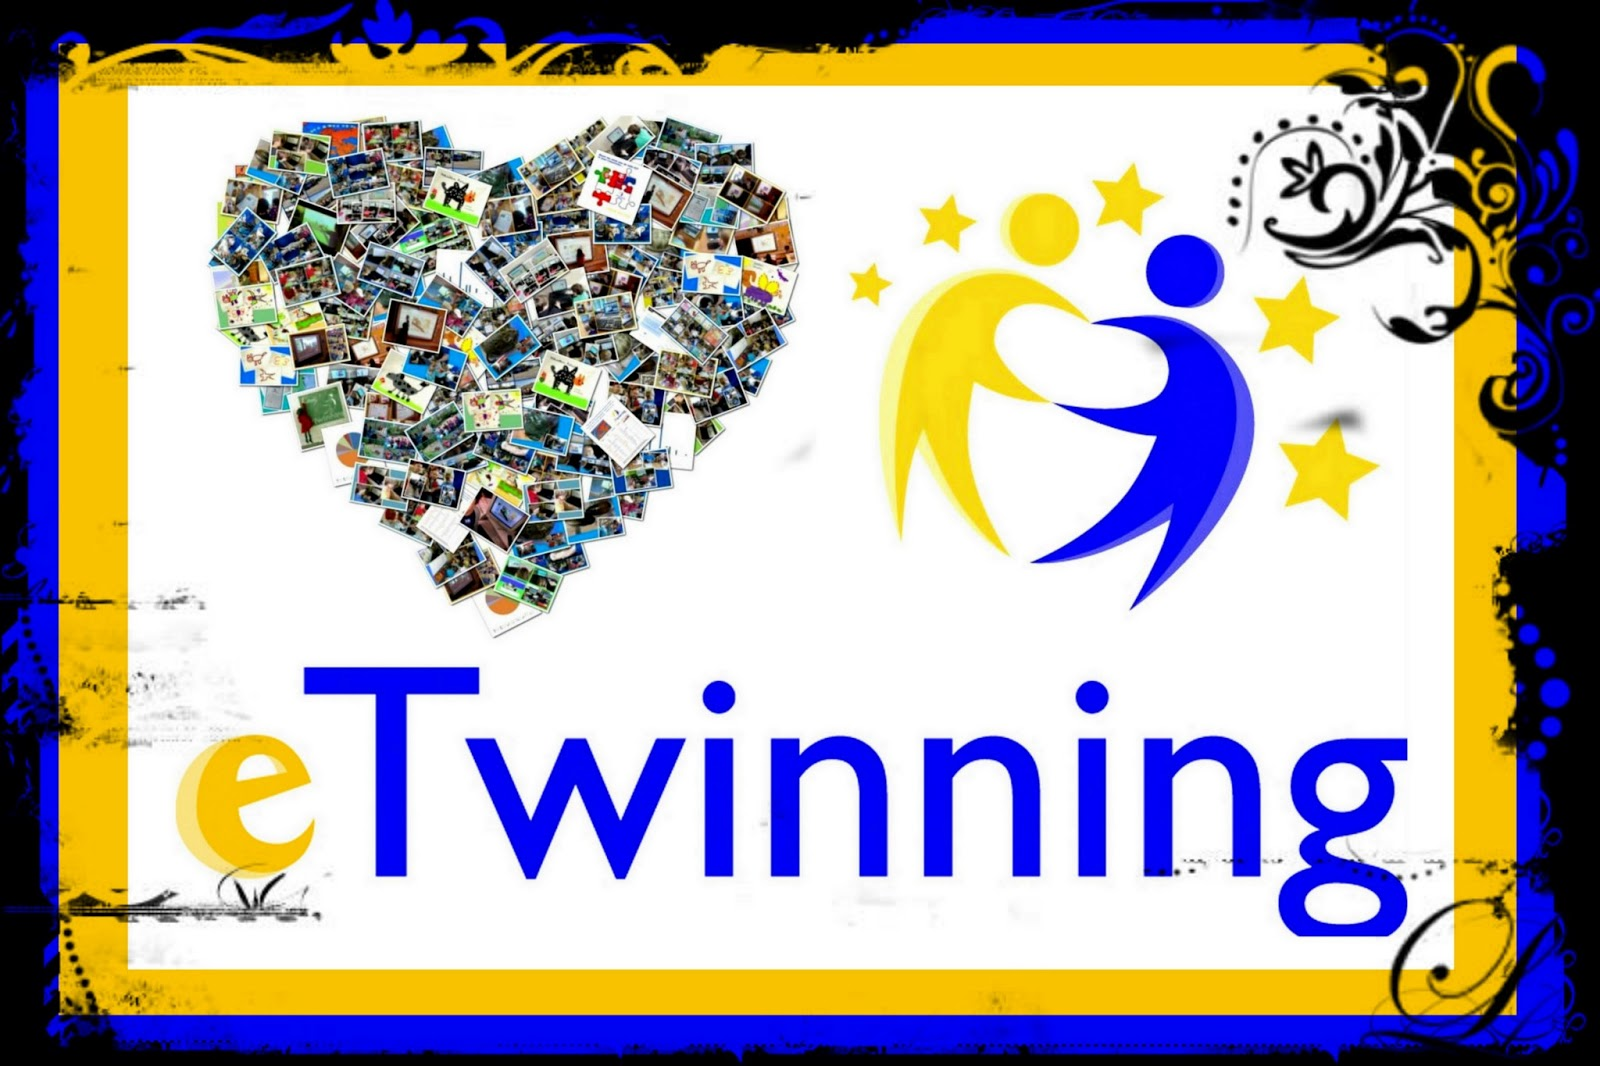 WE WORK IN E-TWINNING